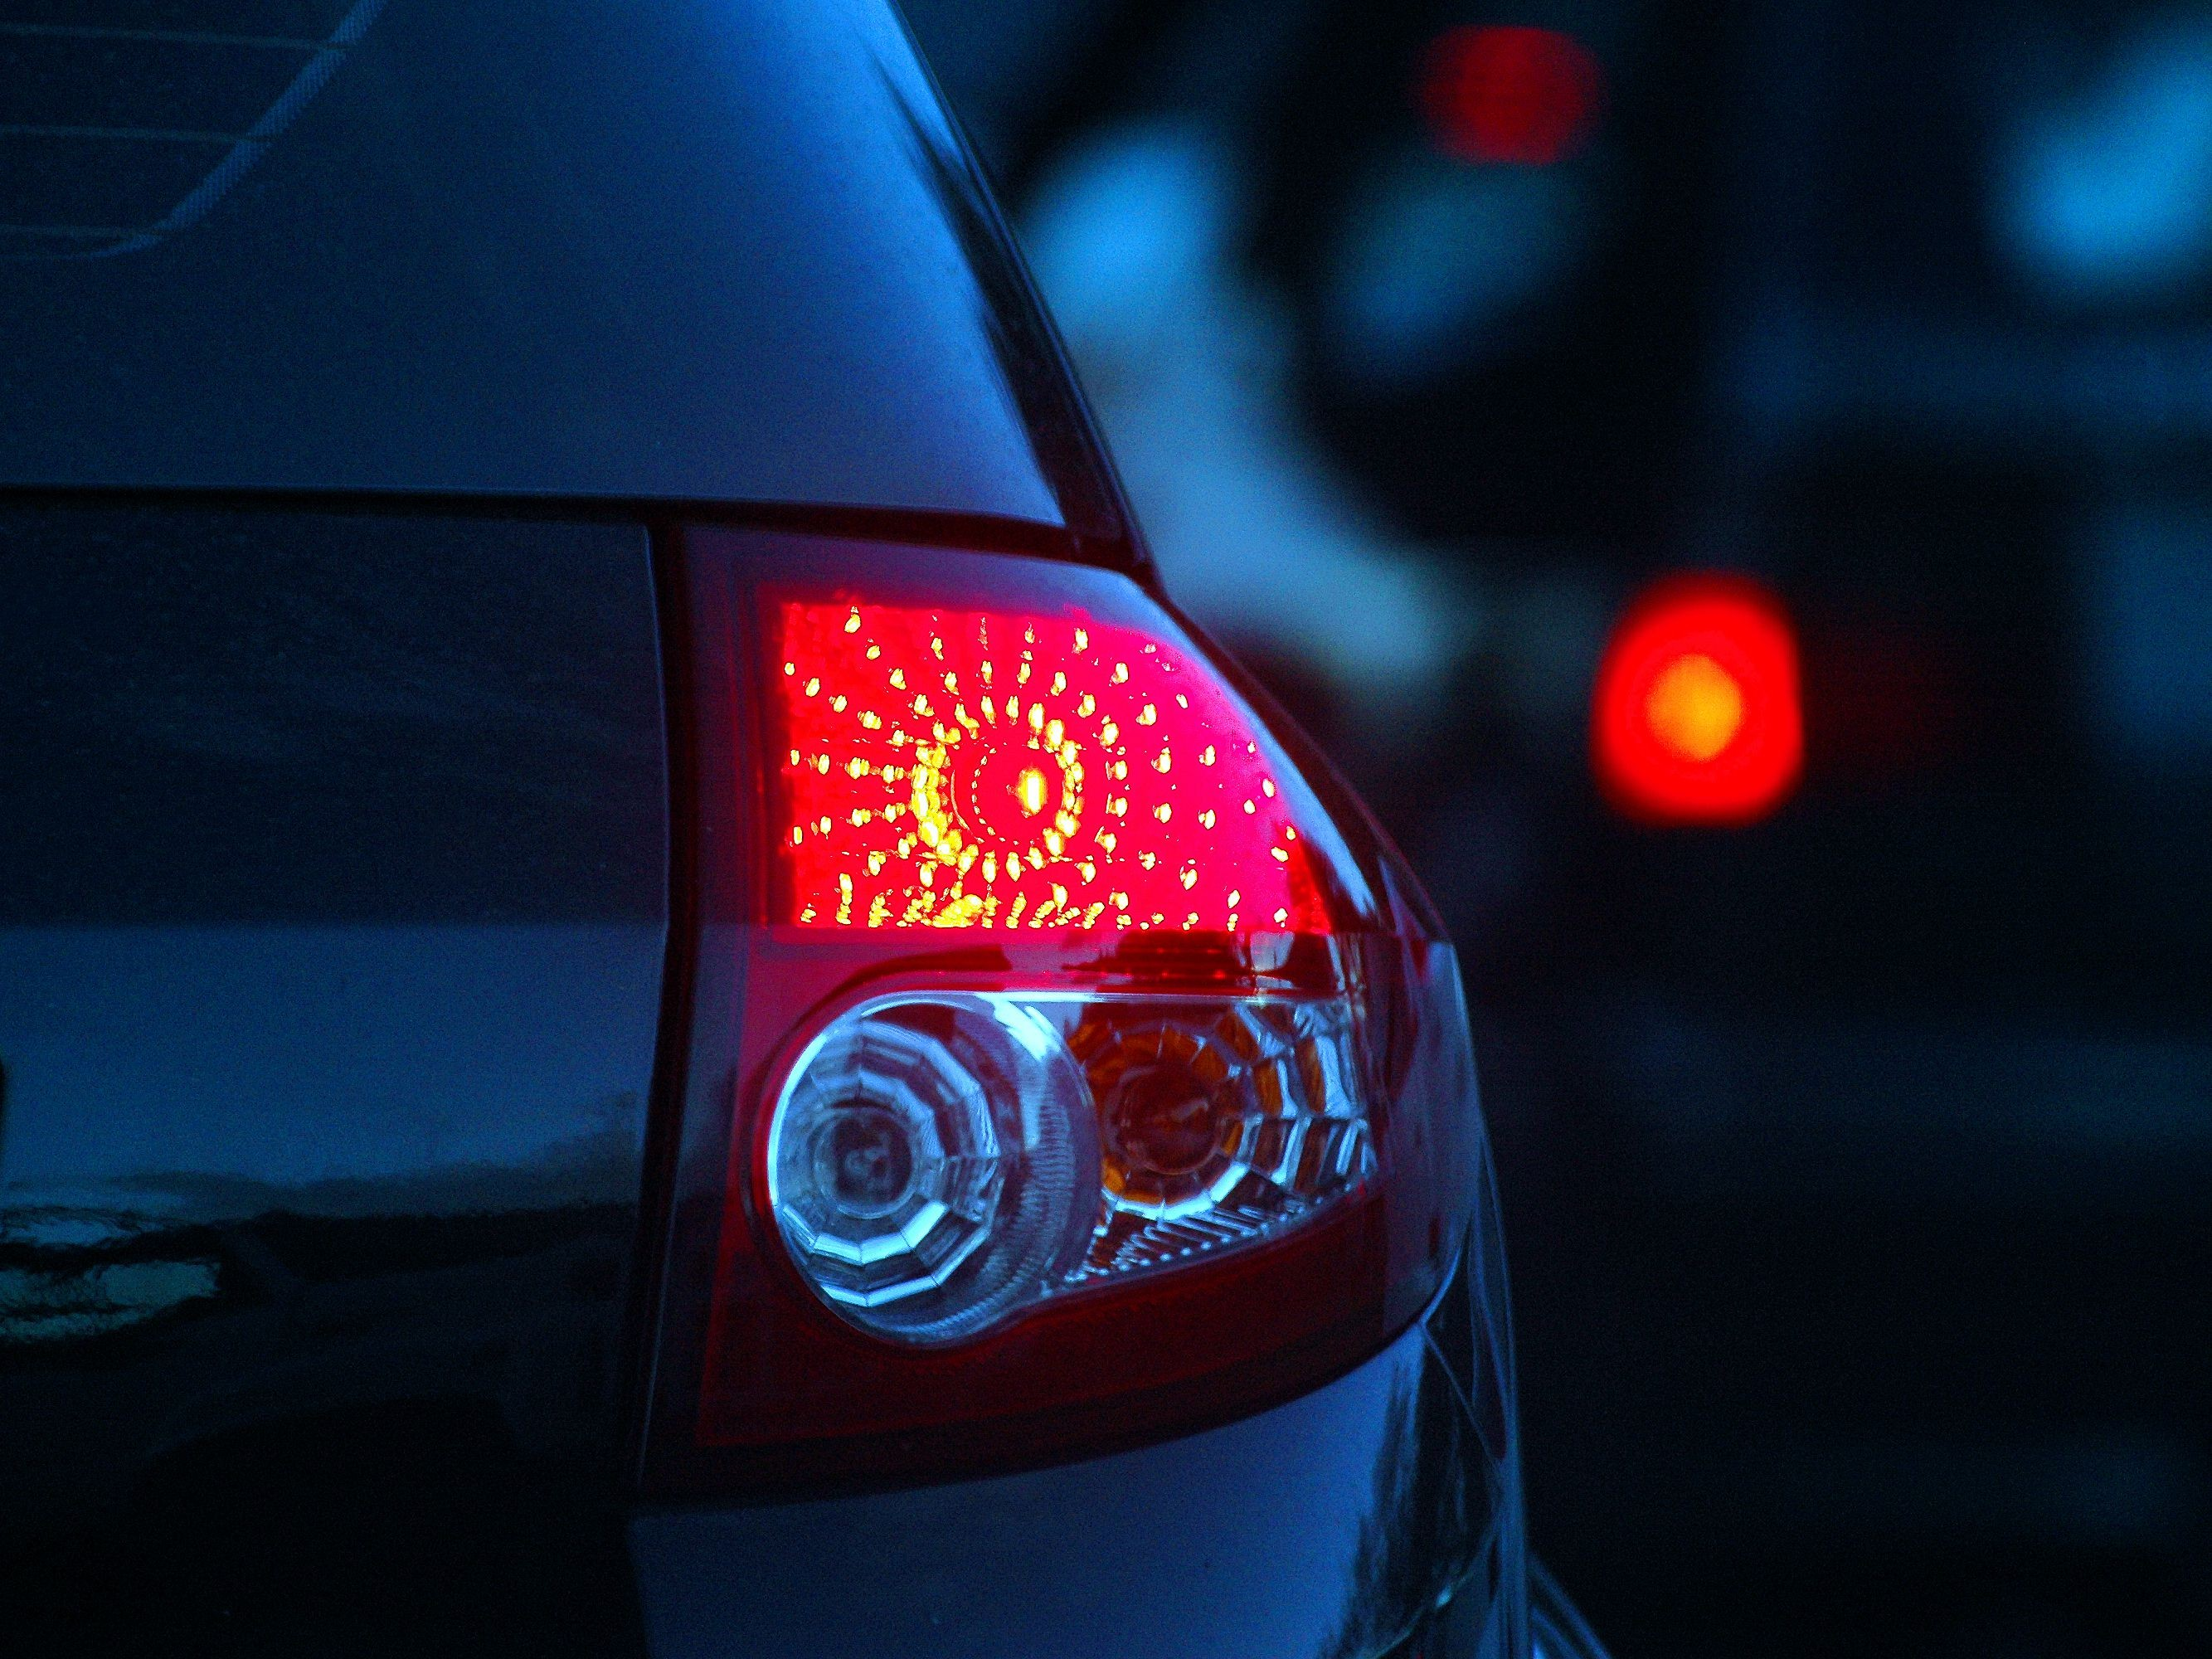 Tail and Brake Light Grote Led Wiring Diagram How to Replace A Rear Brake and Turn Signal Light Bulb Of Tail and Brake Light Grote Led Wiring Diagram